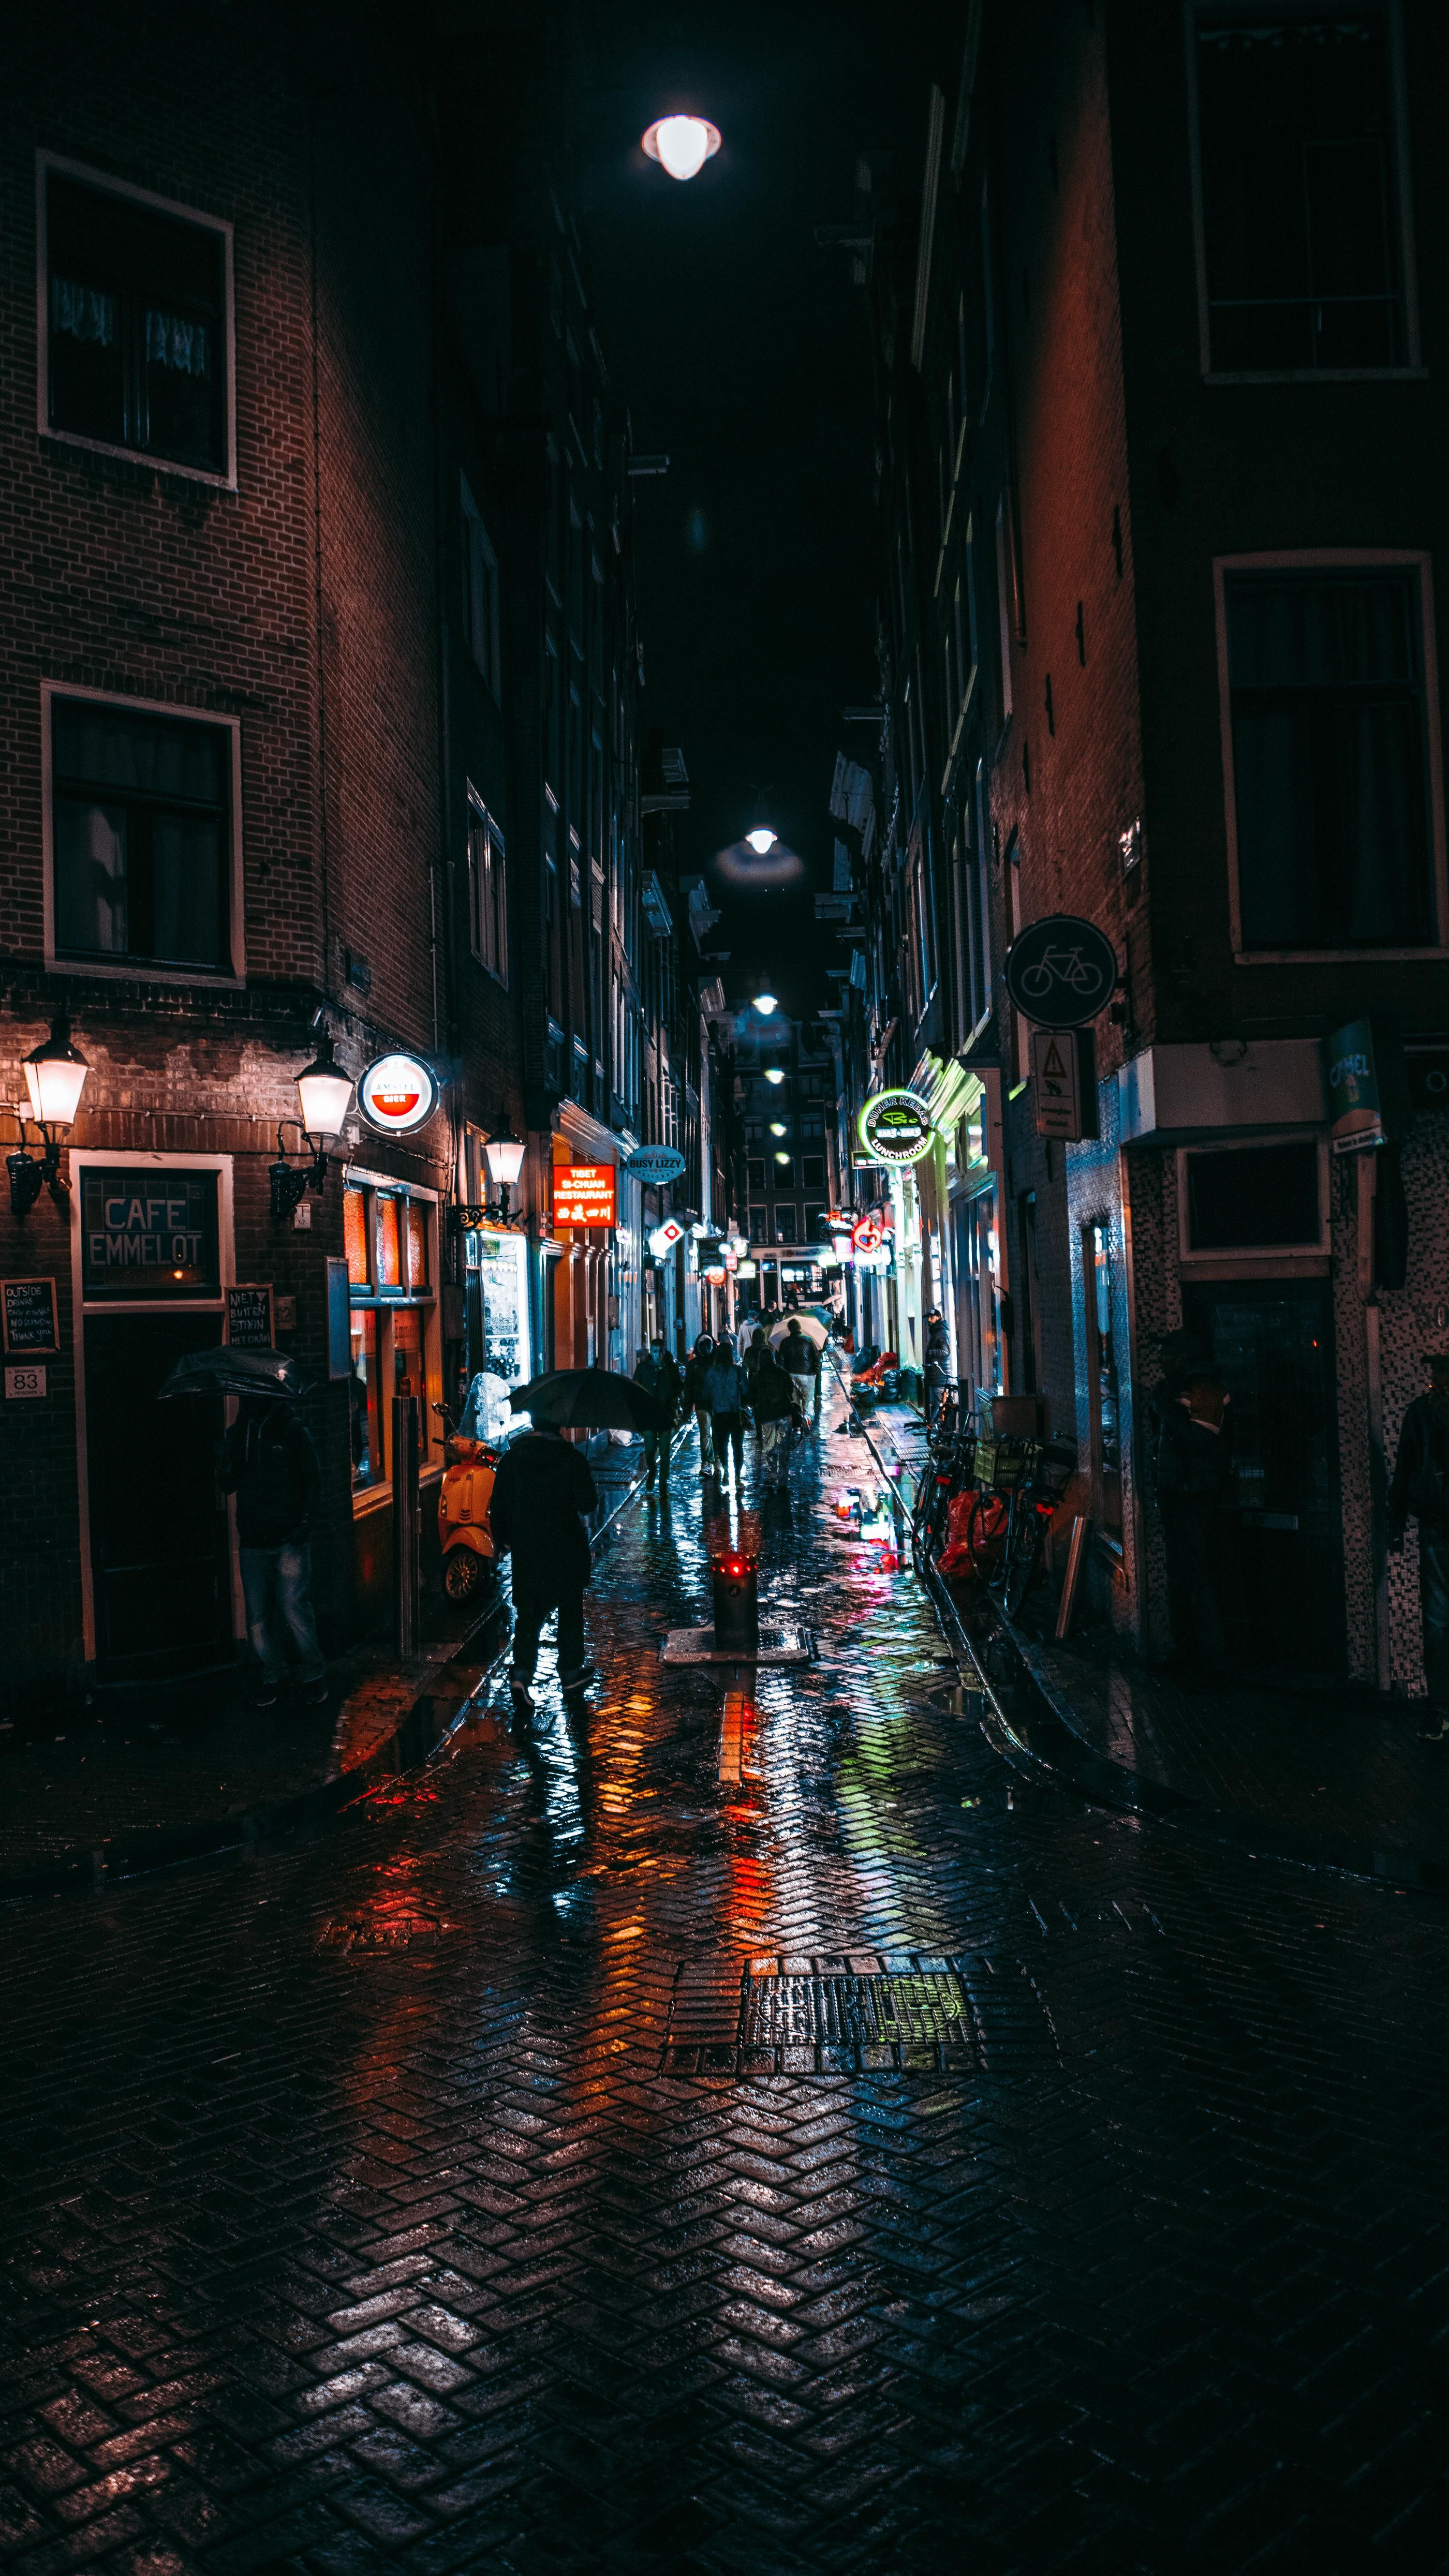 Rainy Gb City Rain Rain Wallpapers Night City